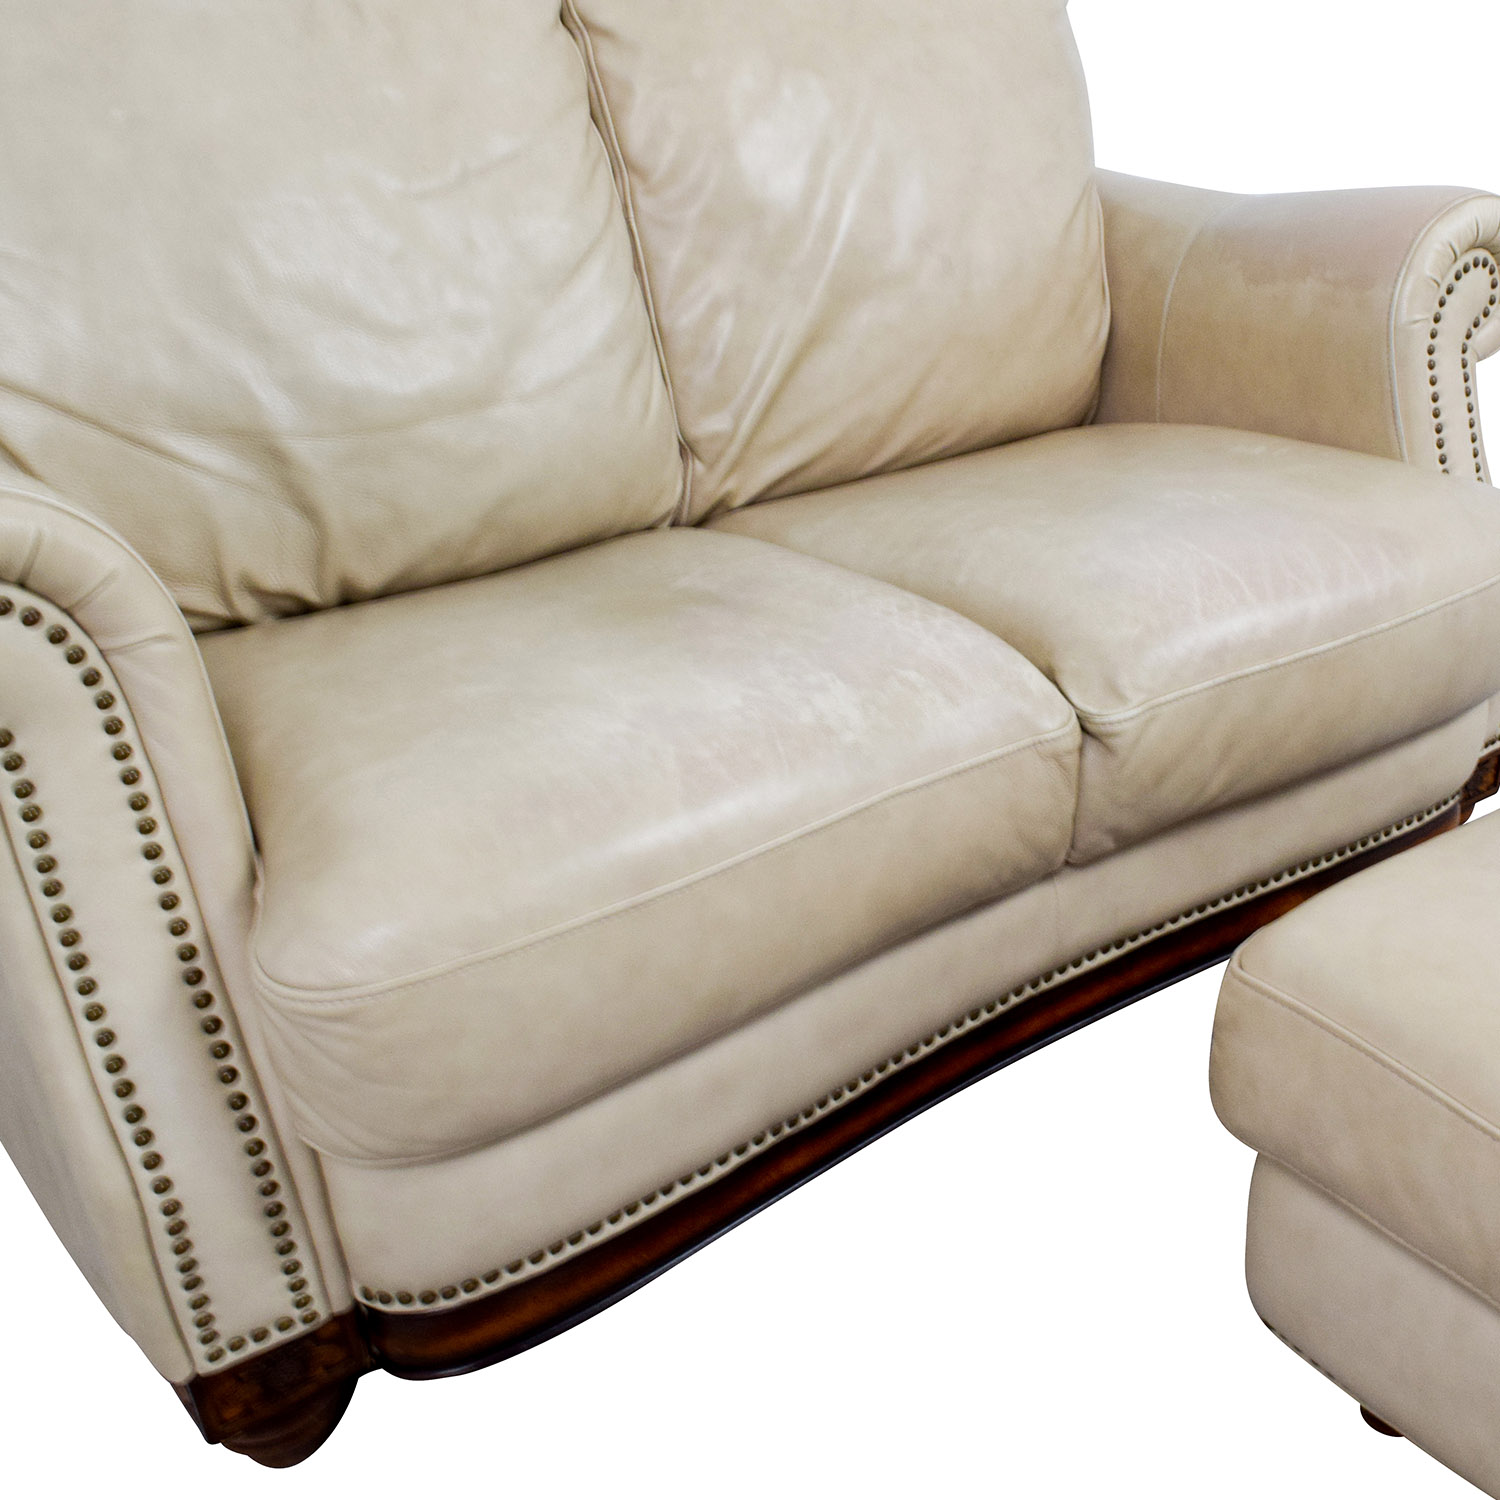 74 off raymour flanigan raymour flanigan studded for Studded leather sofa